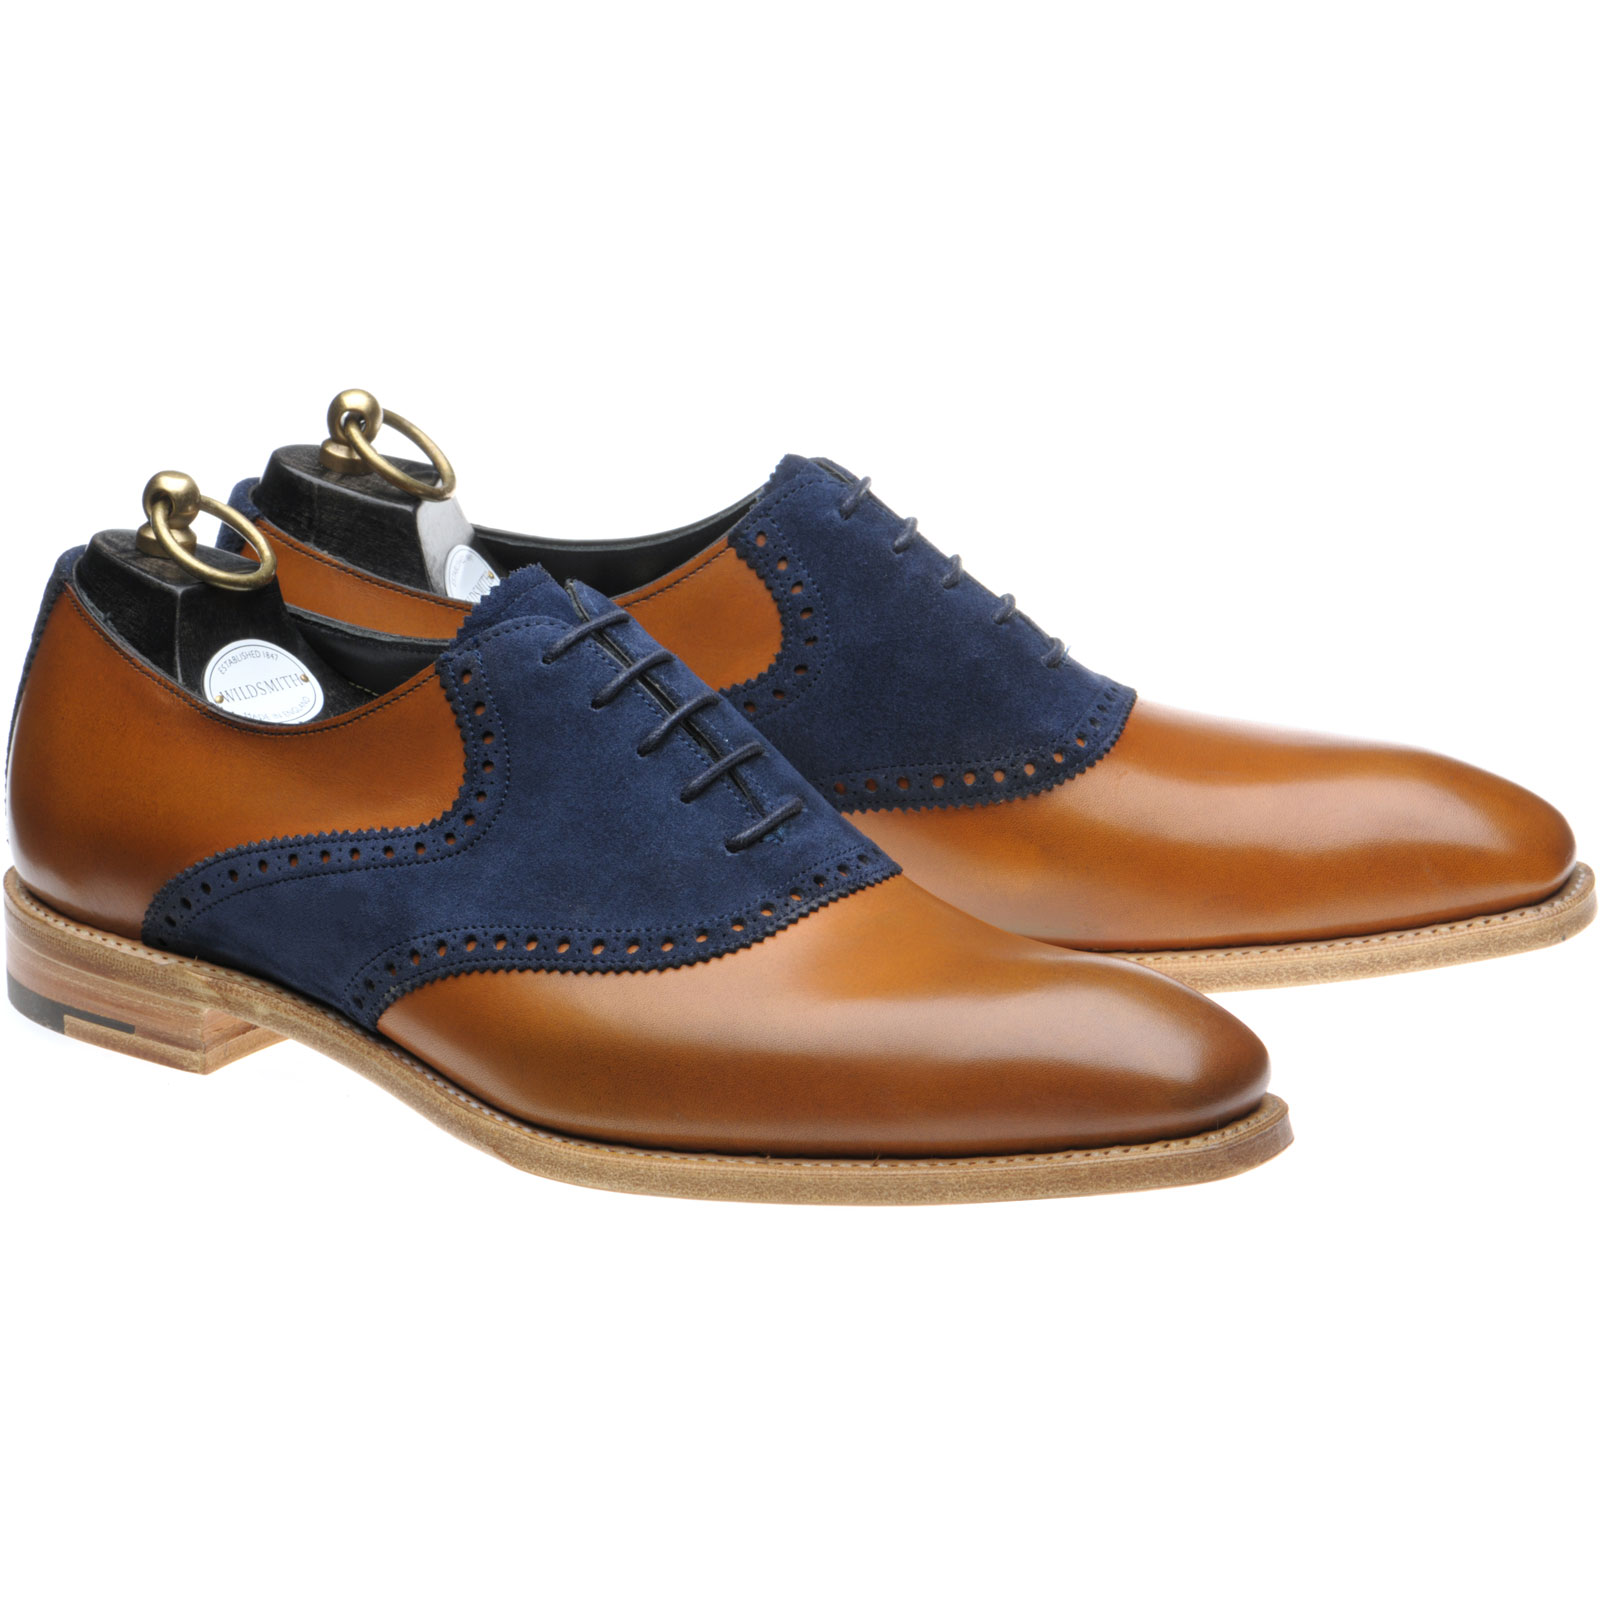 Wildsmith Harrison two-tone shoes